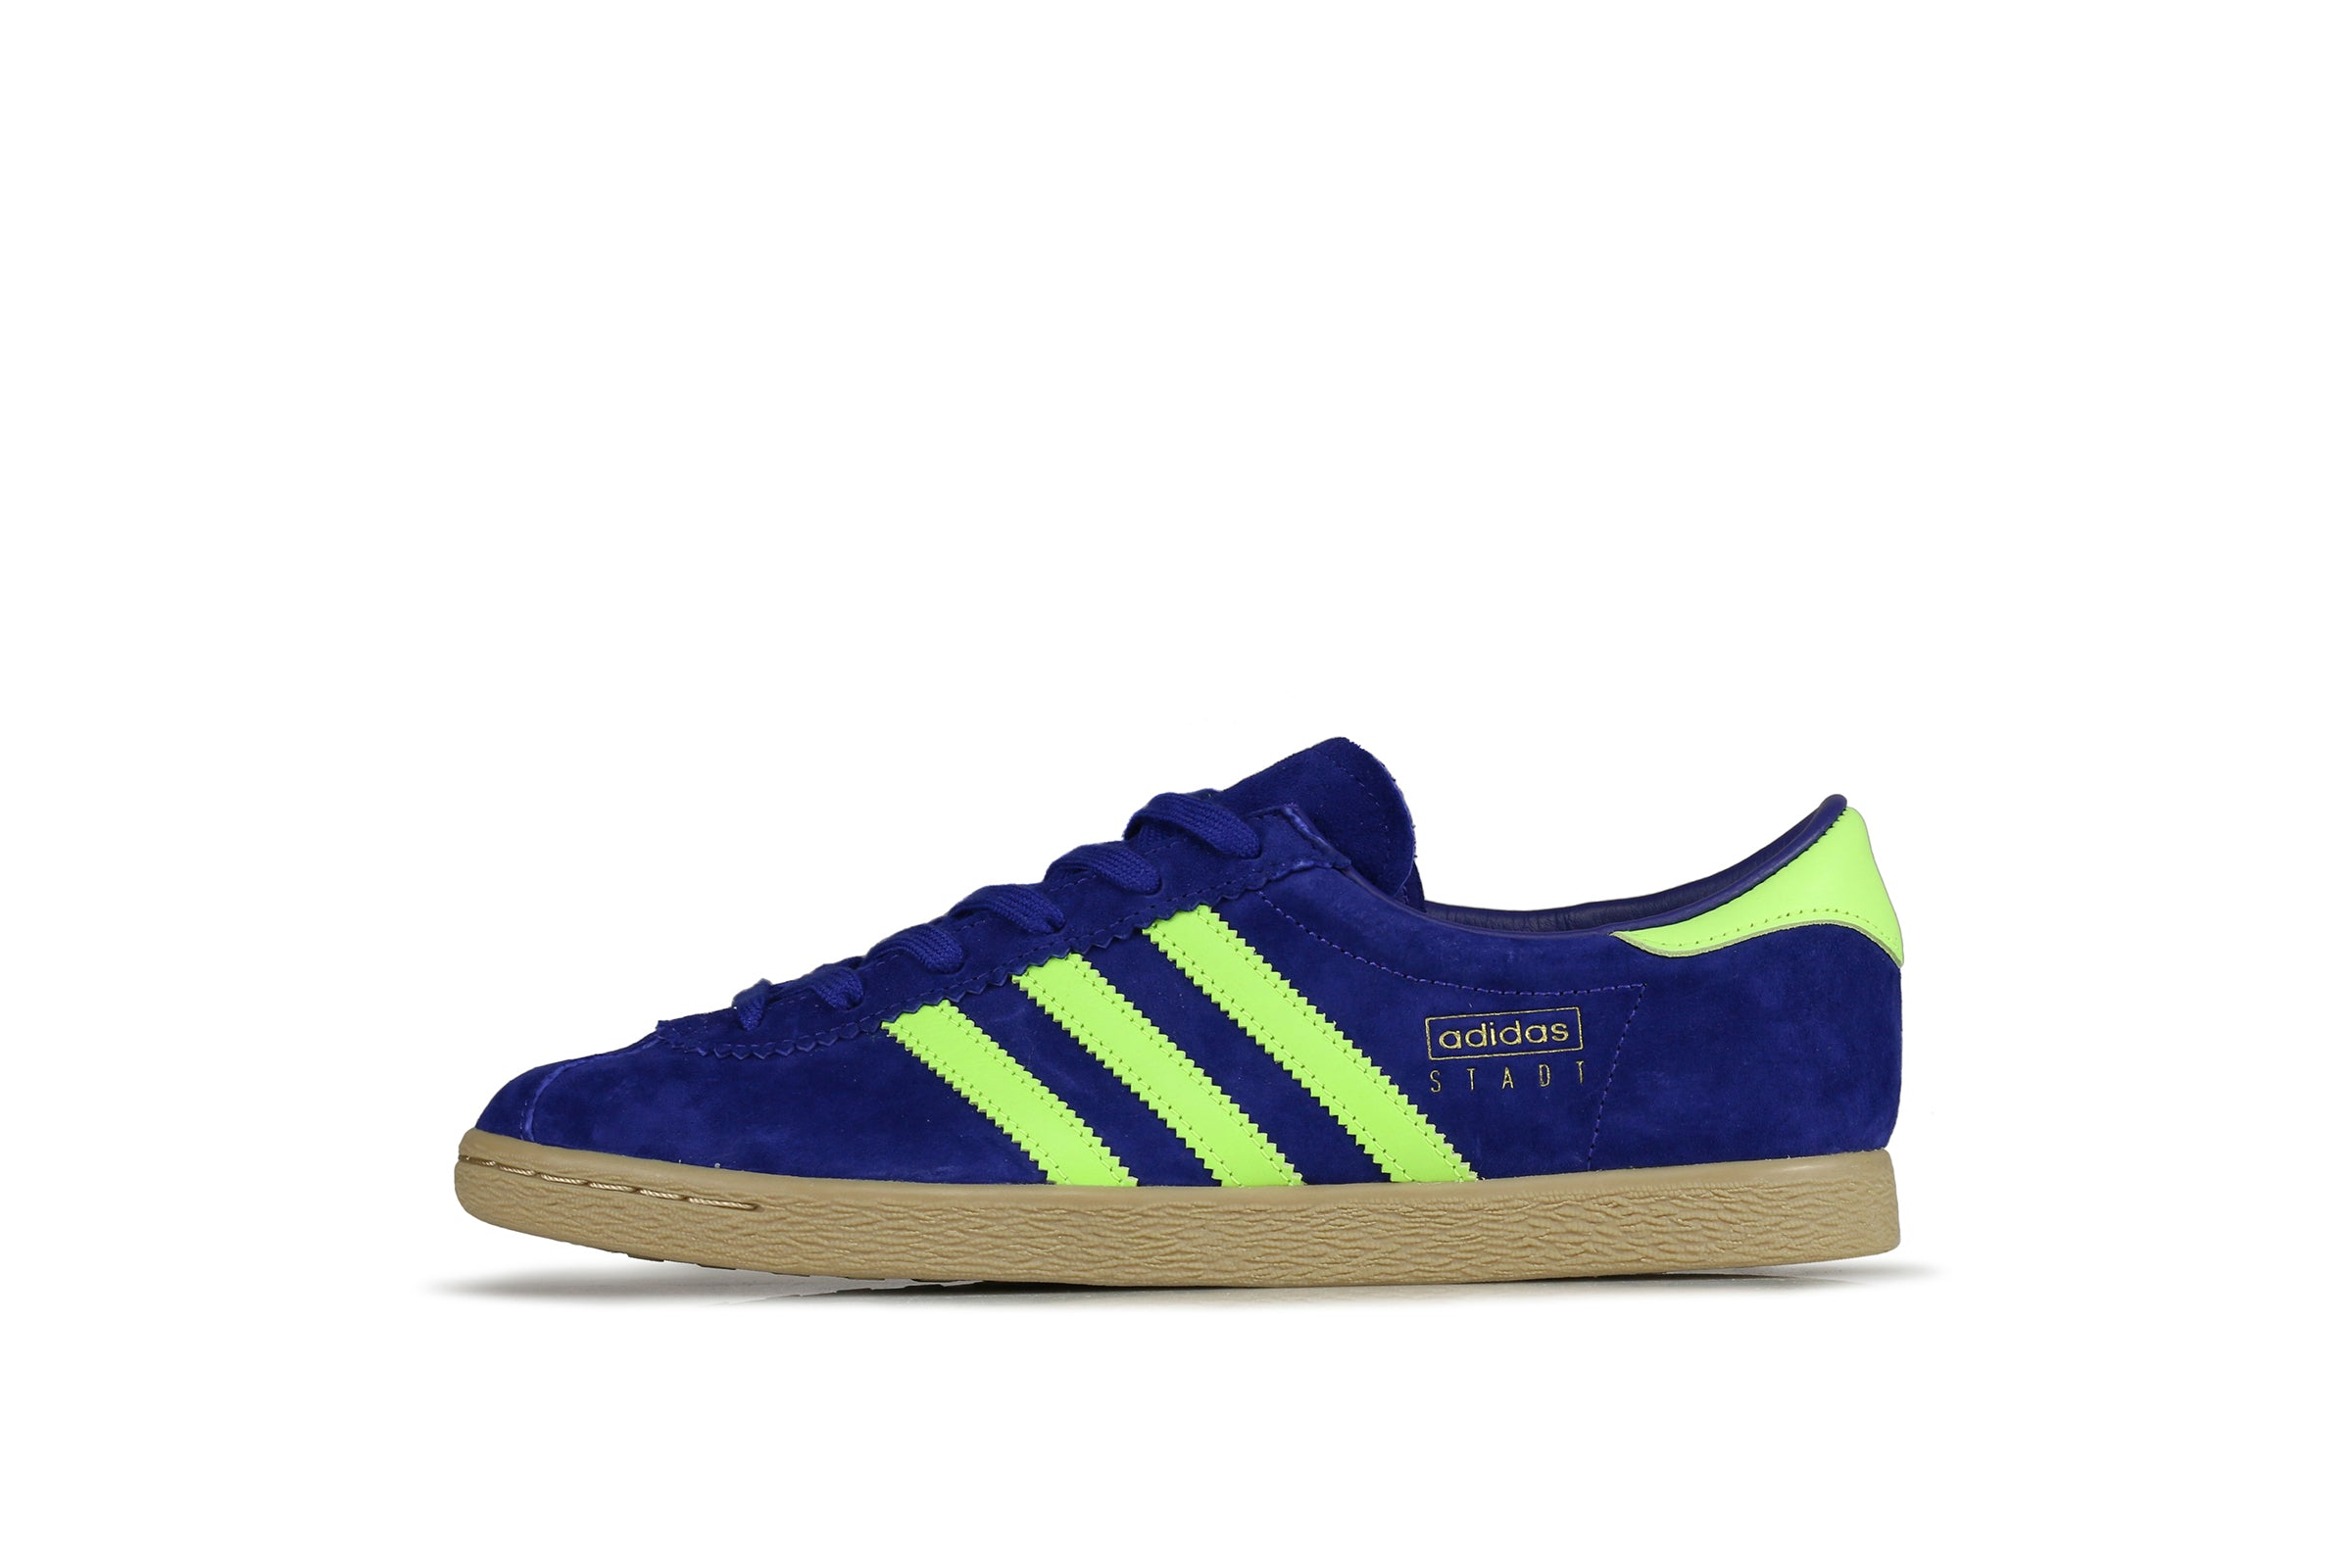 adidas Jeans Super Blue Suede size? Exclusive Sneaker Bar